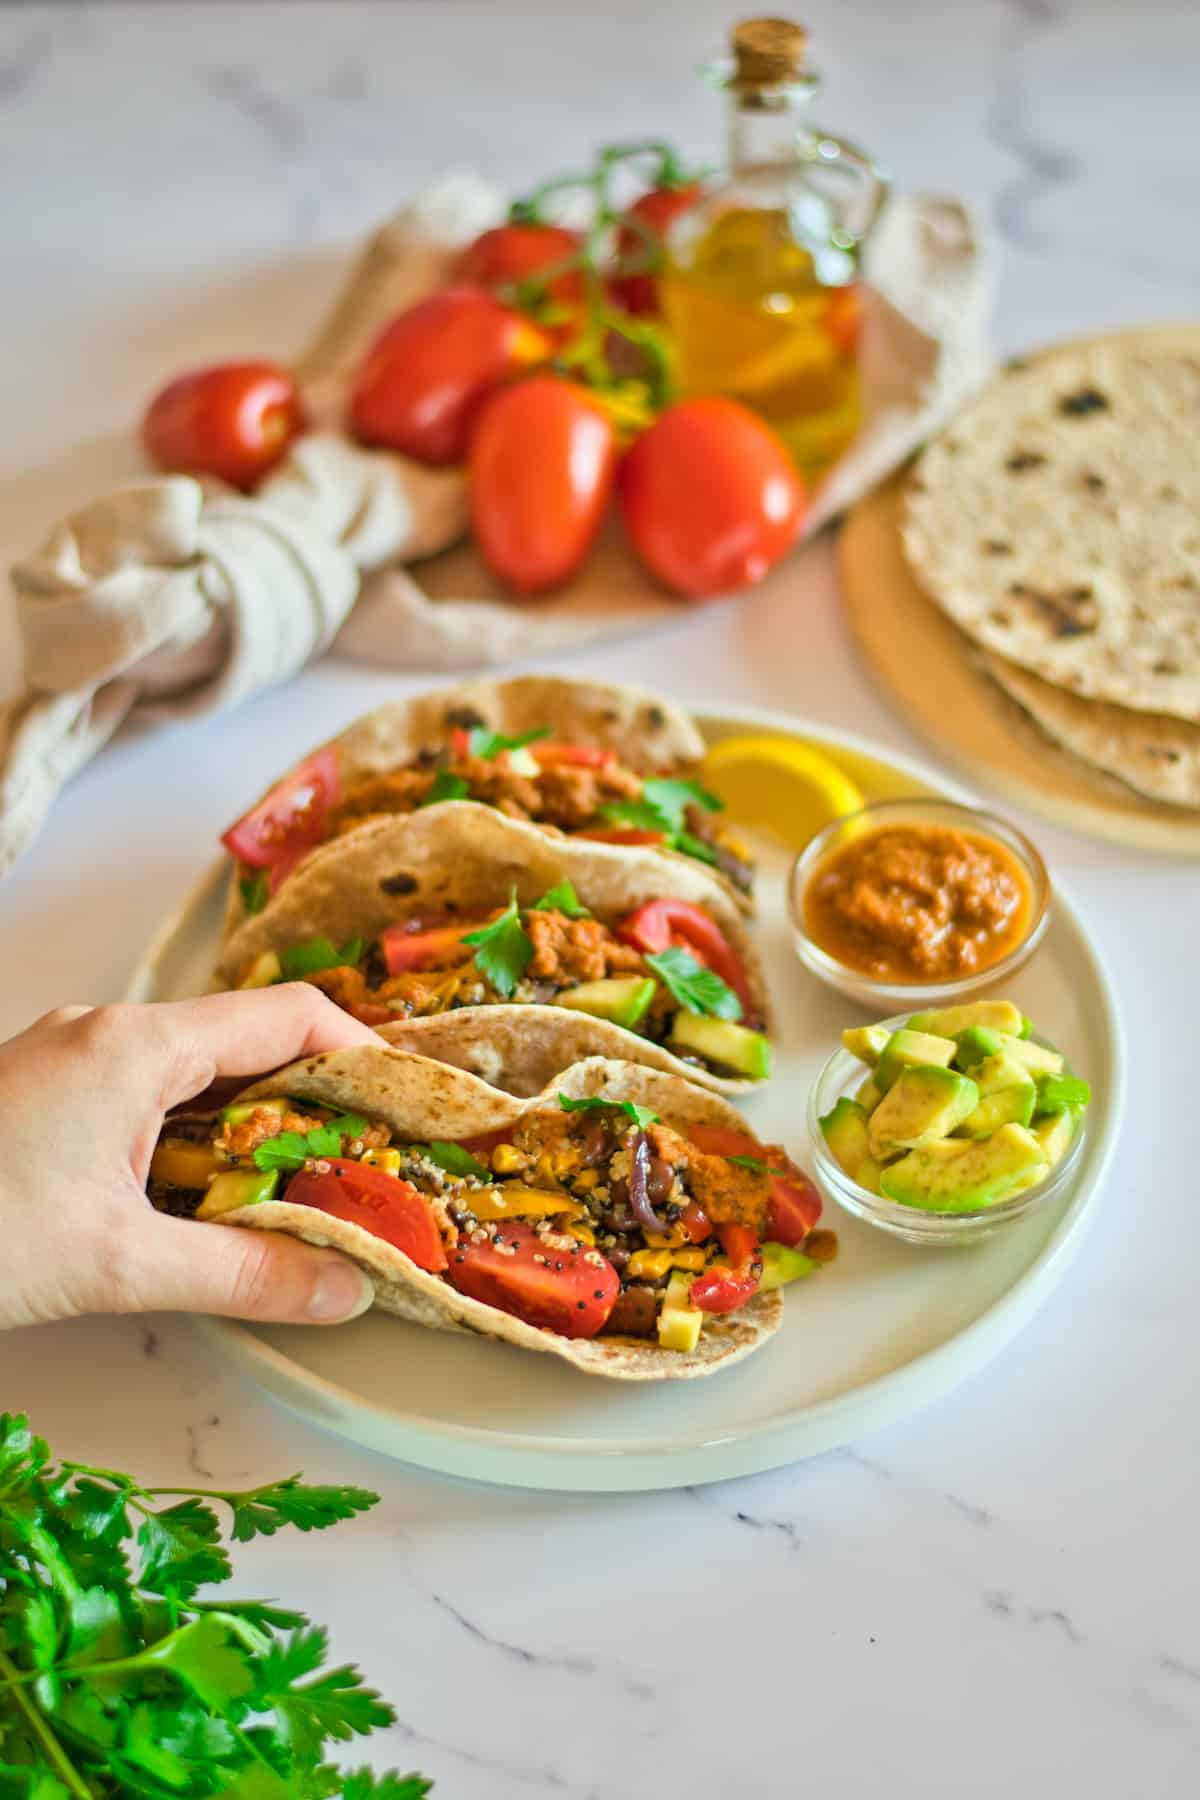 Hand holding a Quinoa Taco with more tacos and ingredients in the background